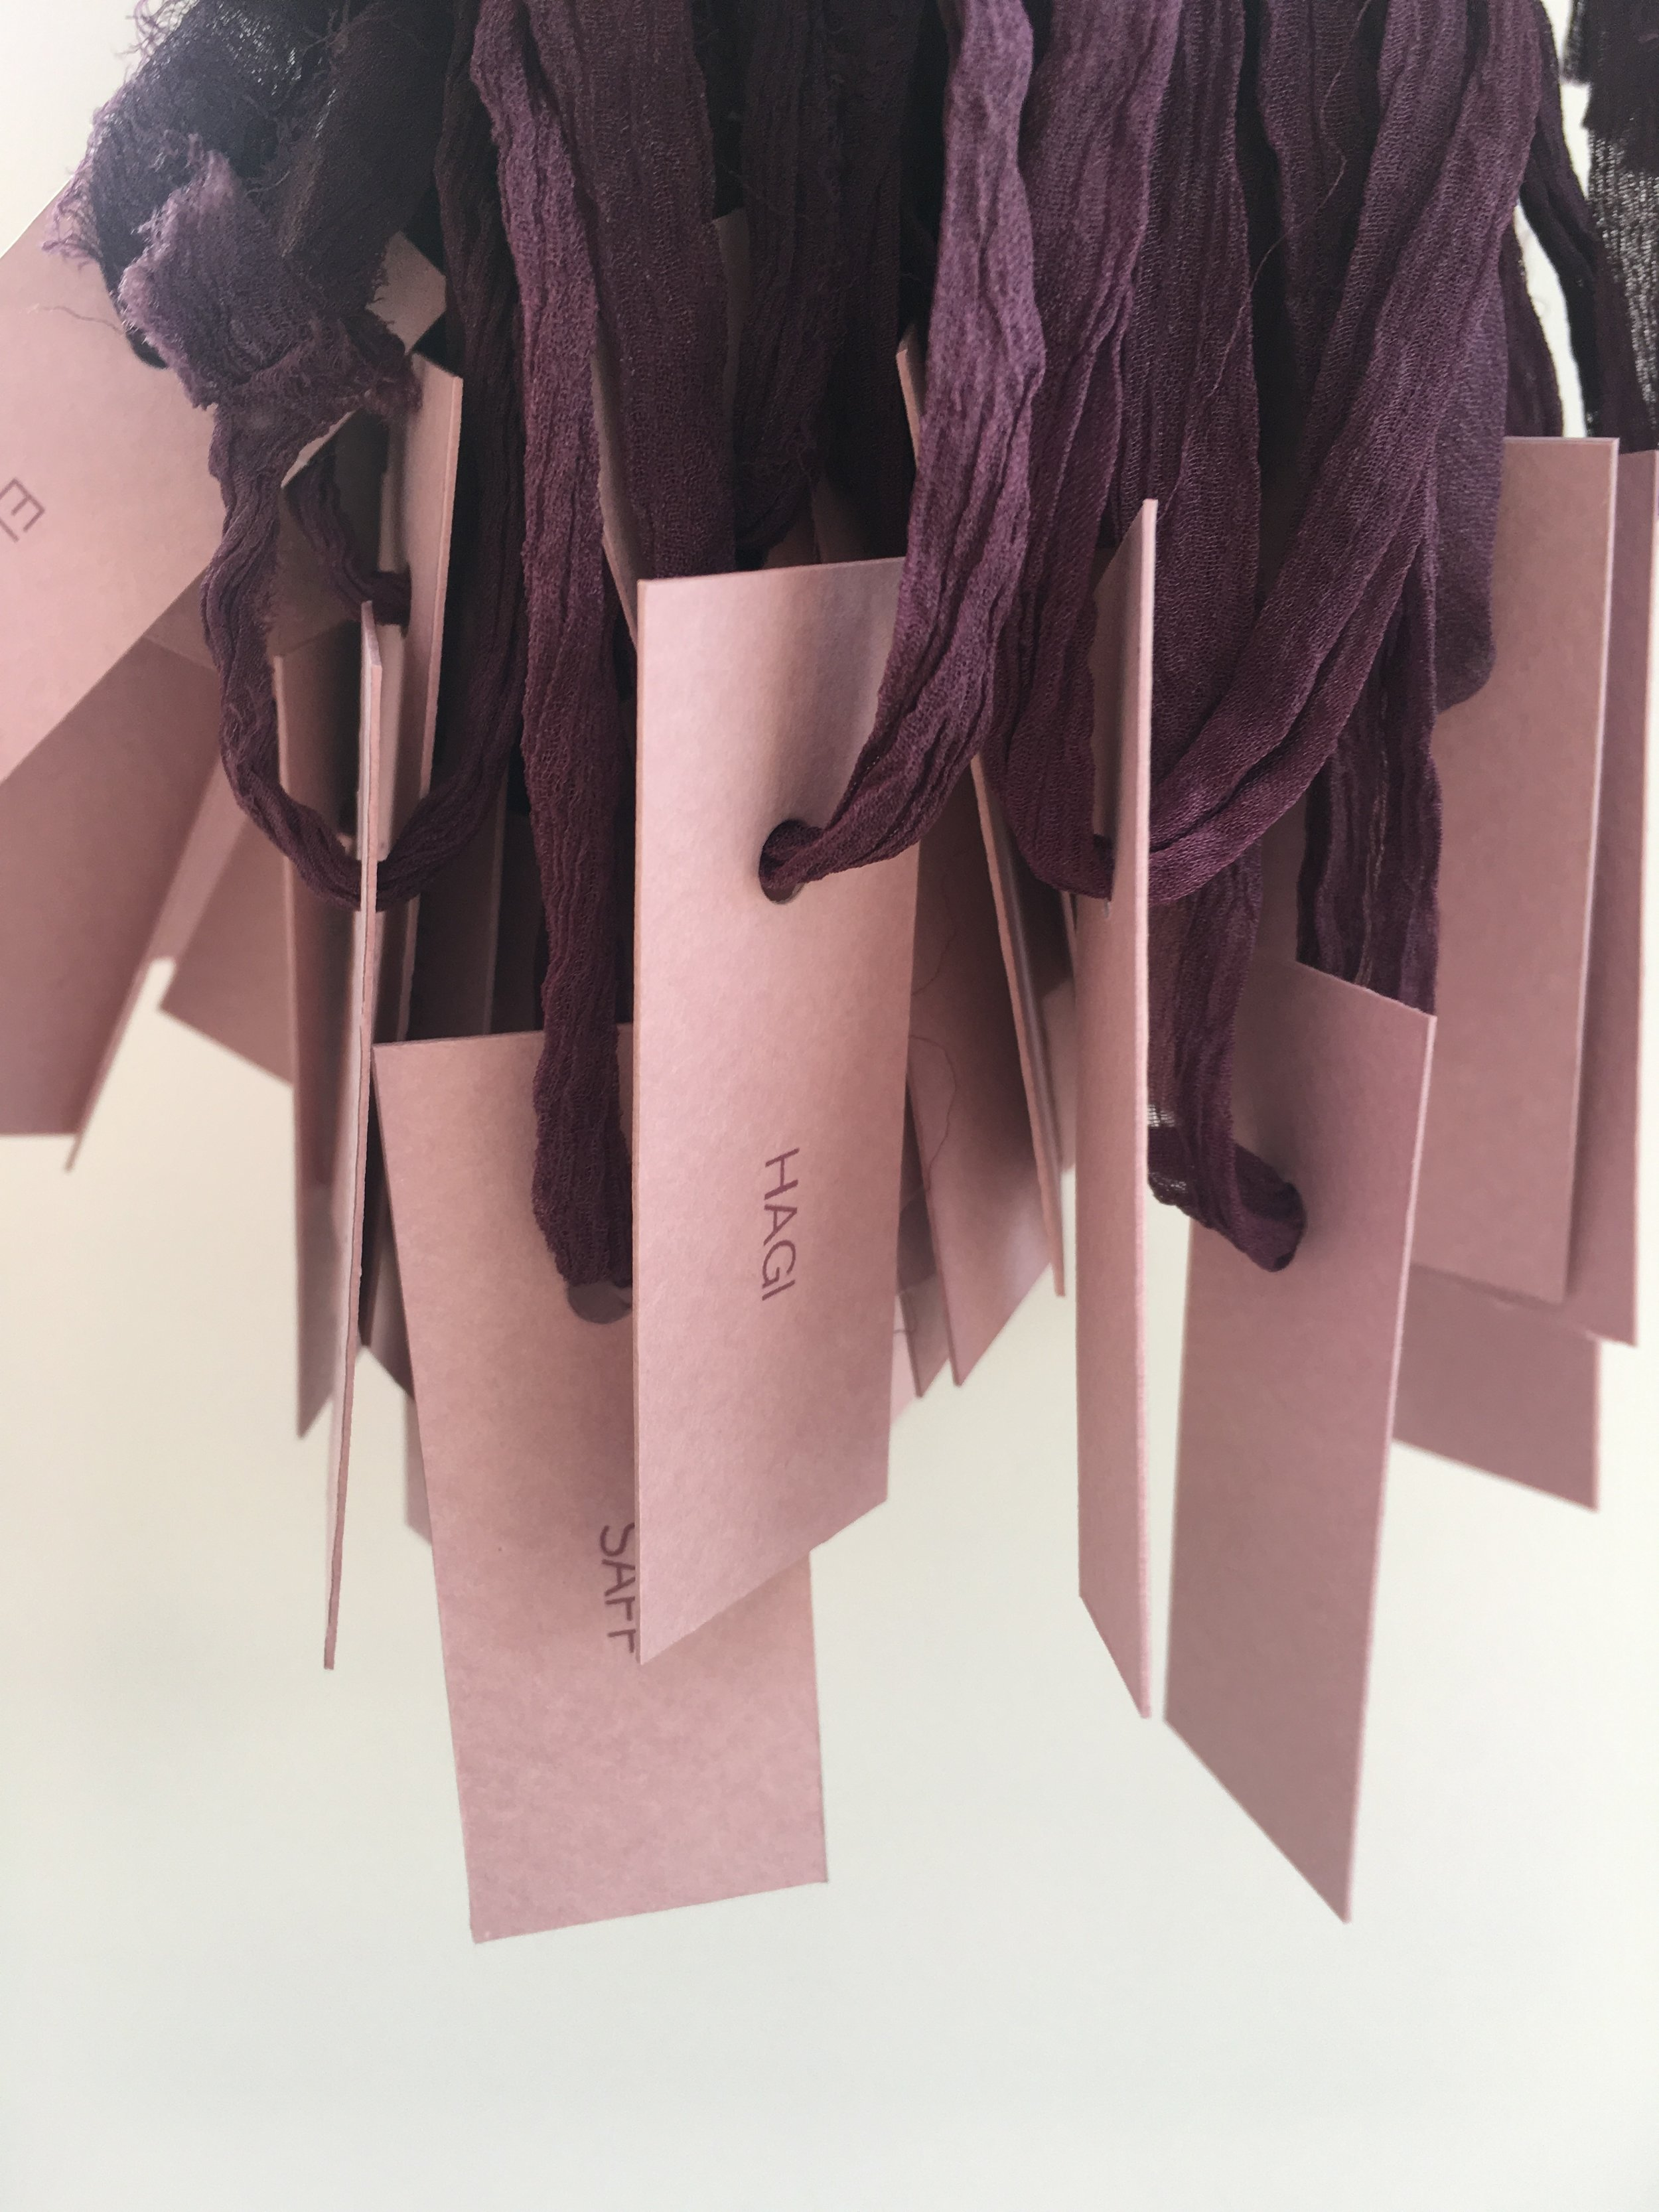 Name tags for a large event